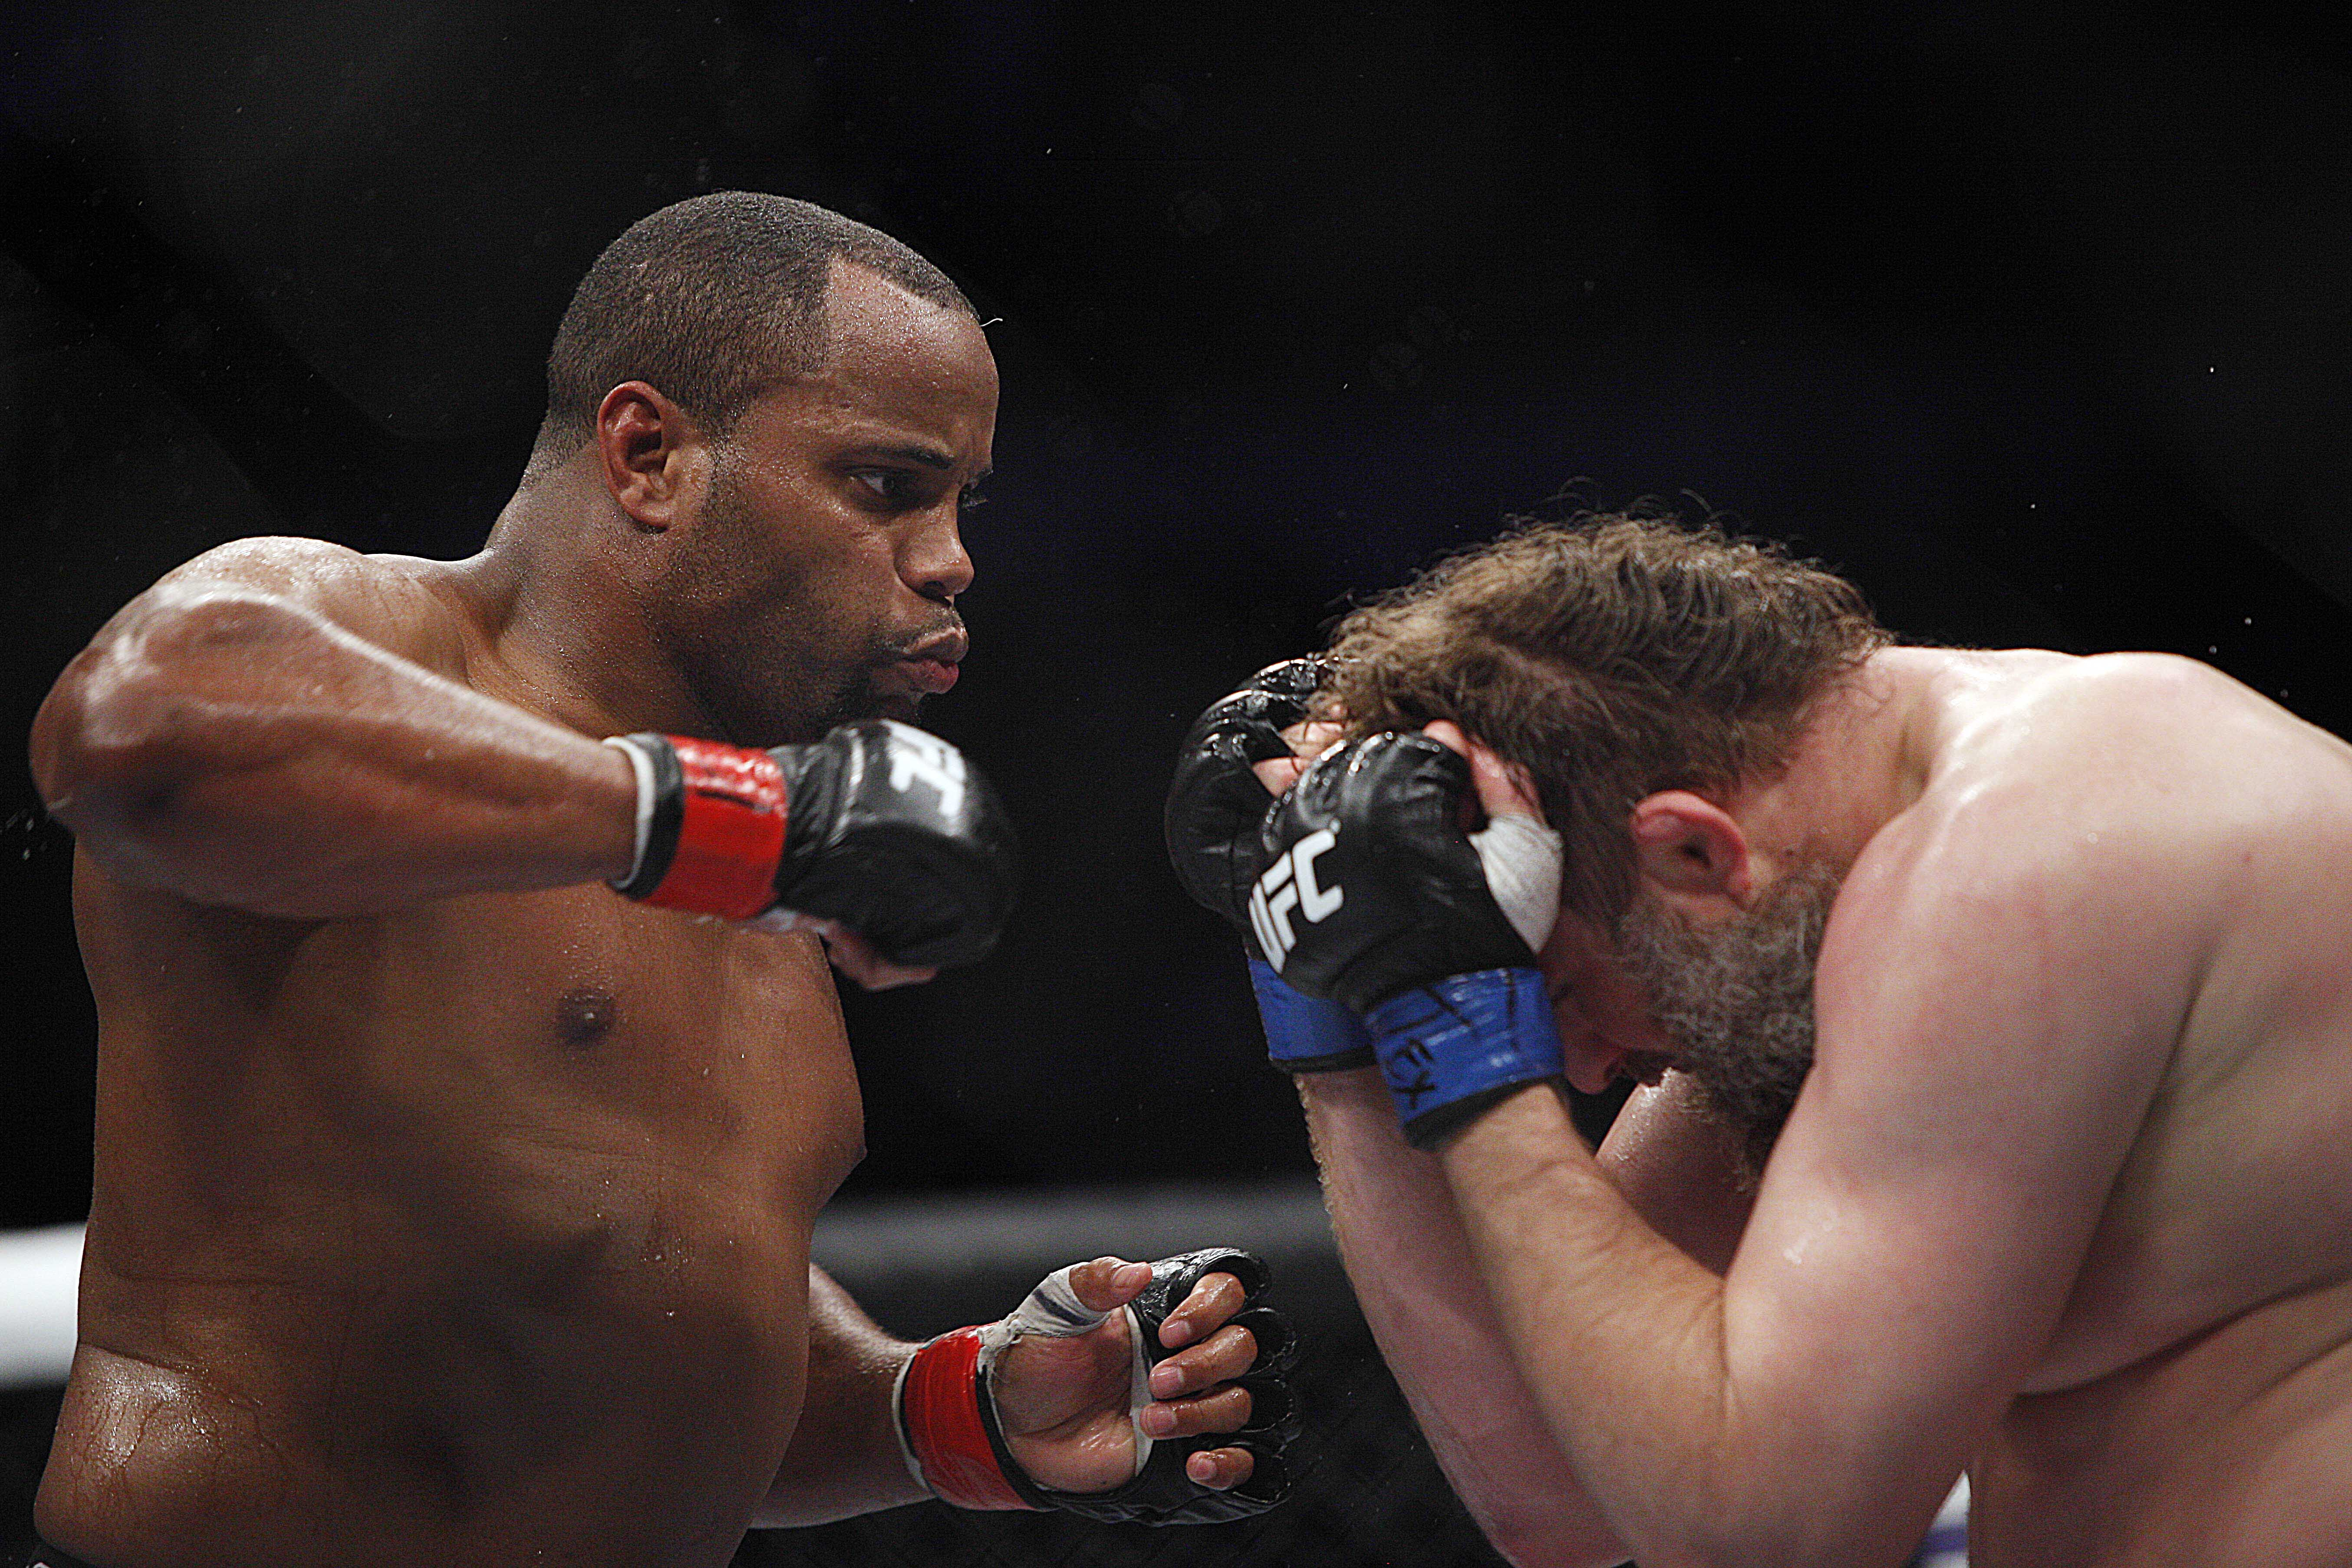 Daniel Cormier (red gloves) fights against Roy Nelson (blue gloves). (USA Today)